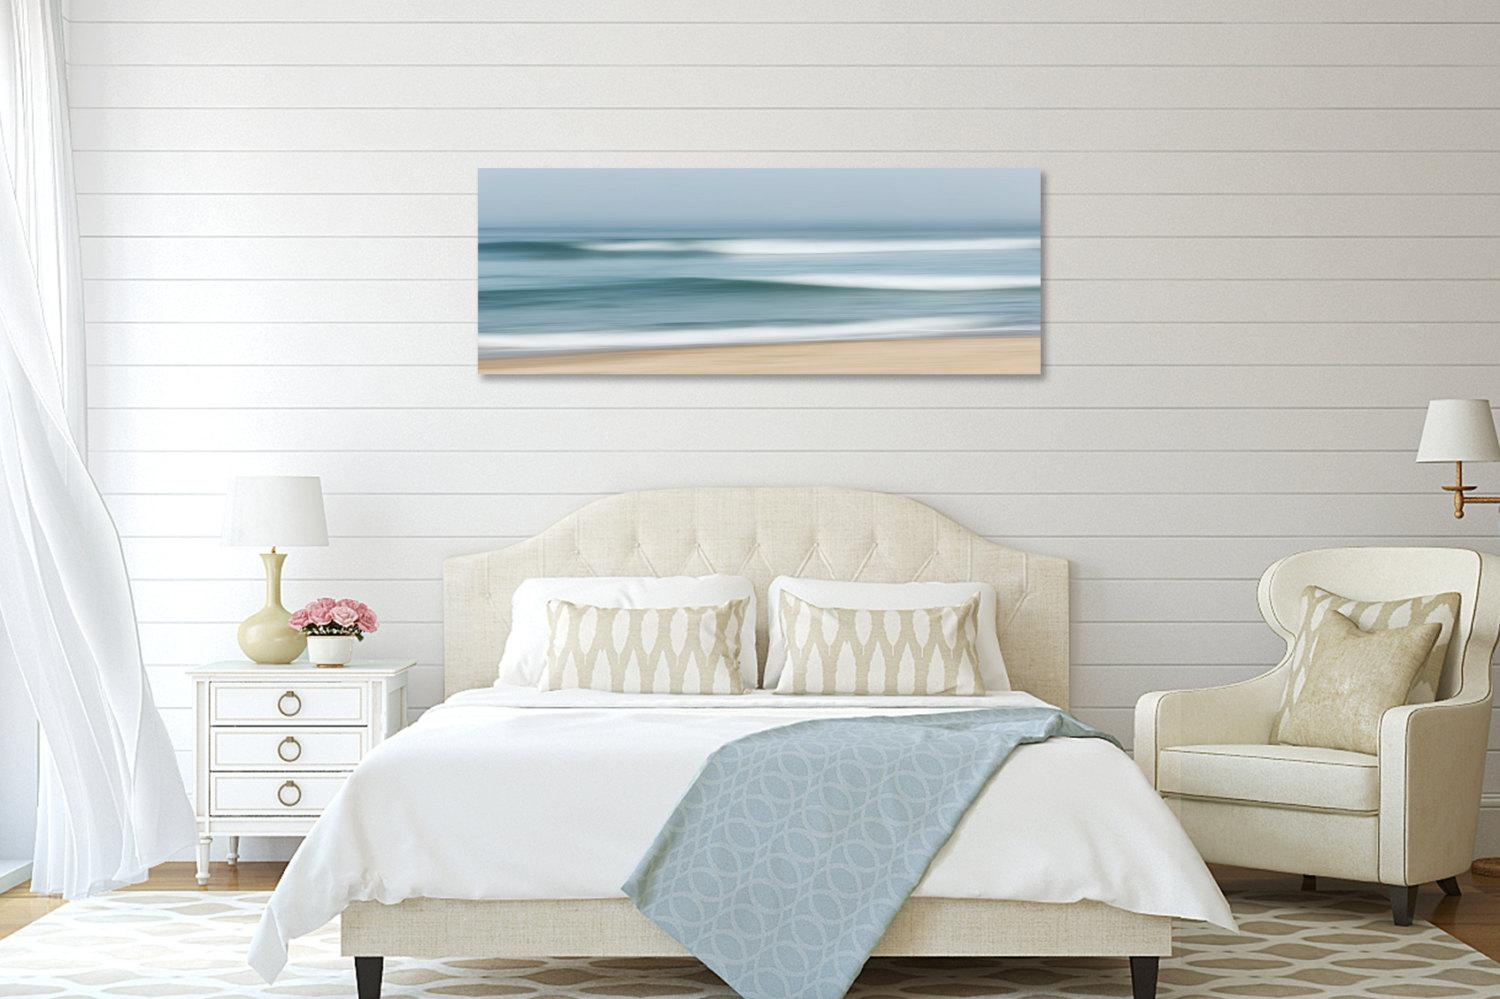 Large Abstract Beach Canvas Wall Art Ocean Seascape Pertaining To Nautical Canvas Wall Art (View 14 of 20)